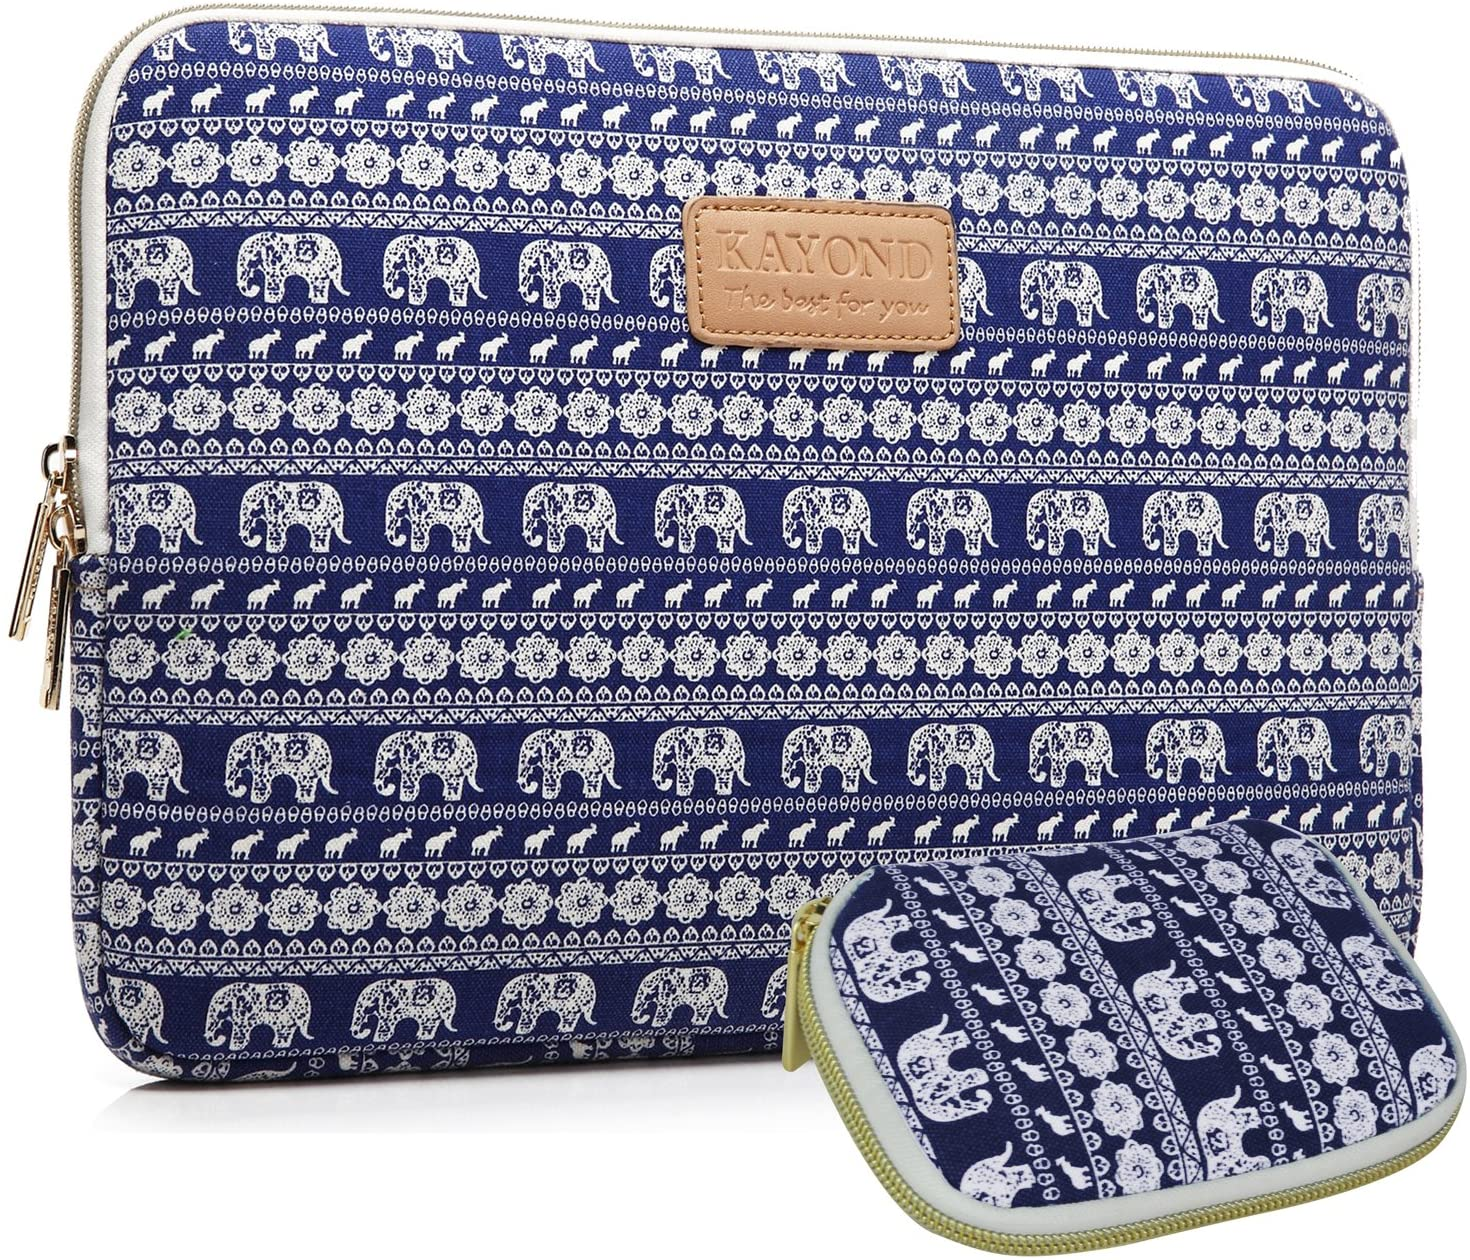 Kayond KY-23 Canvas Fabric Sleeve 13.3-Inch Limited Special Price Elepha Laptops Ranking TOP6 - for